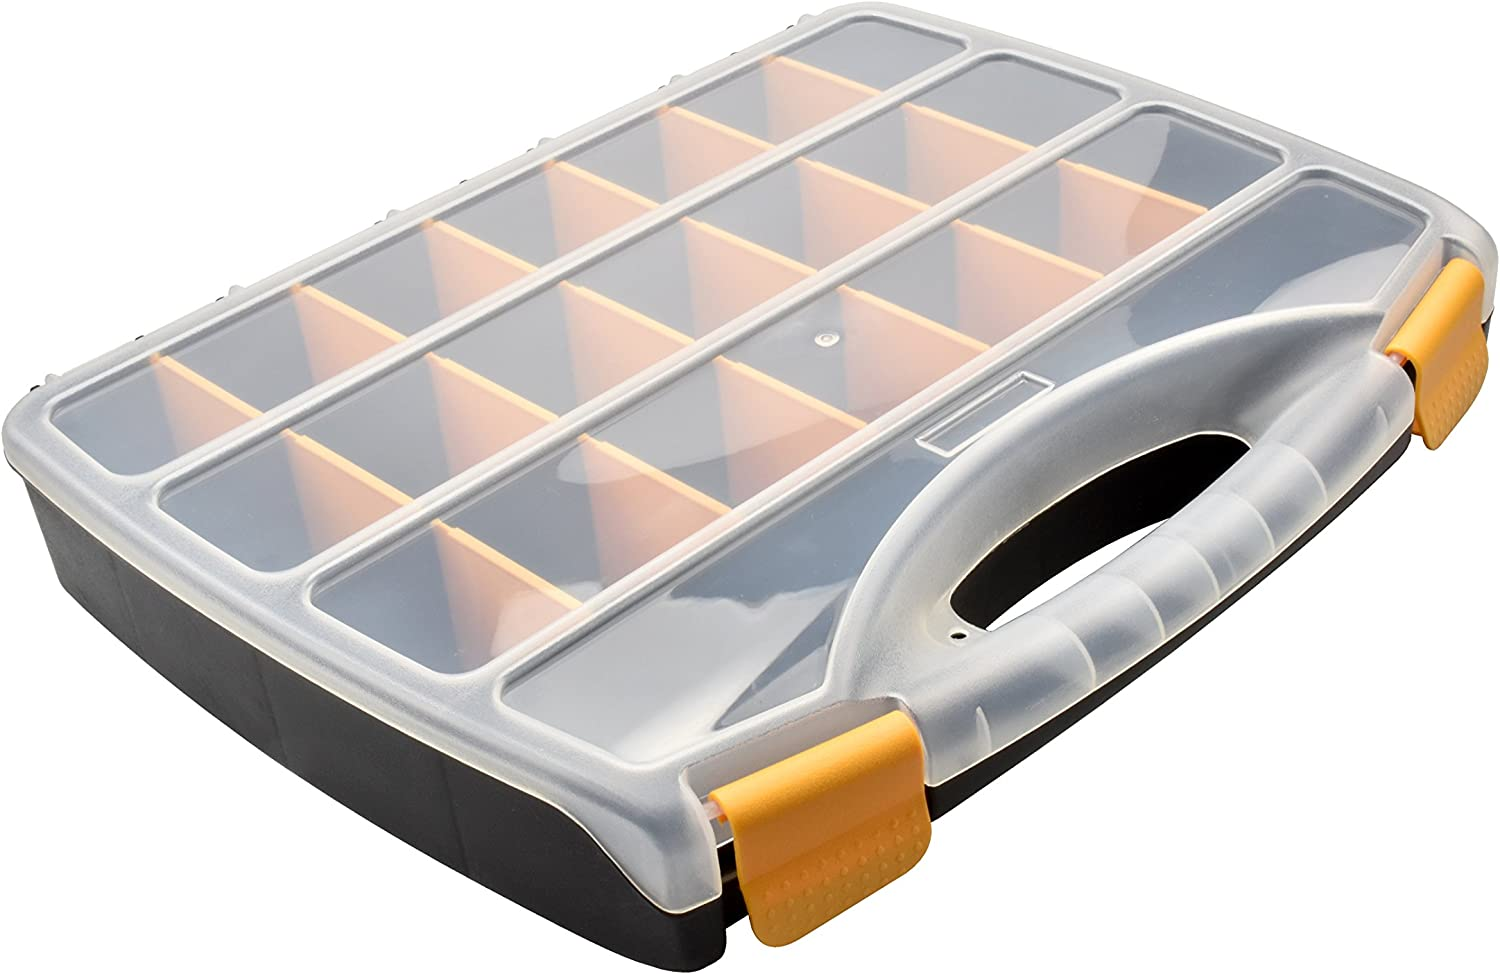 SE 21 Multiple Compartment Storage Container with Lid - 87119DB